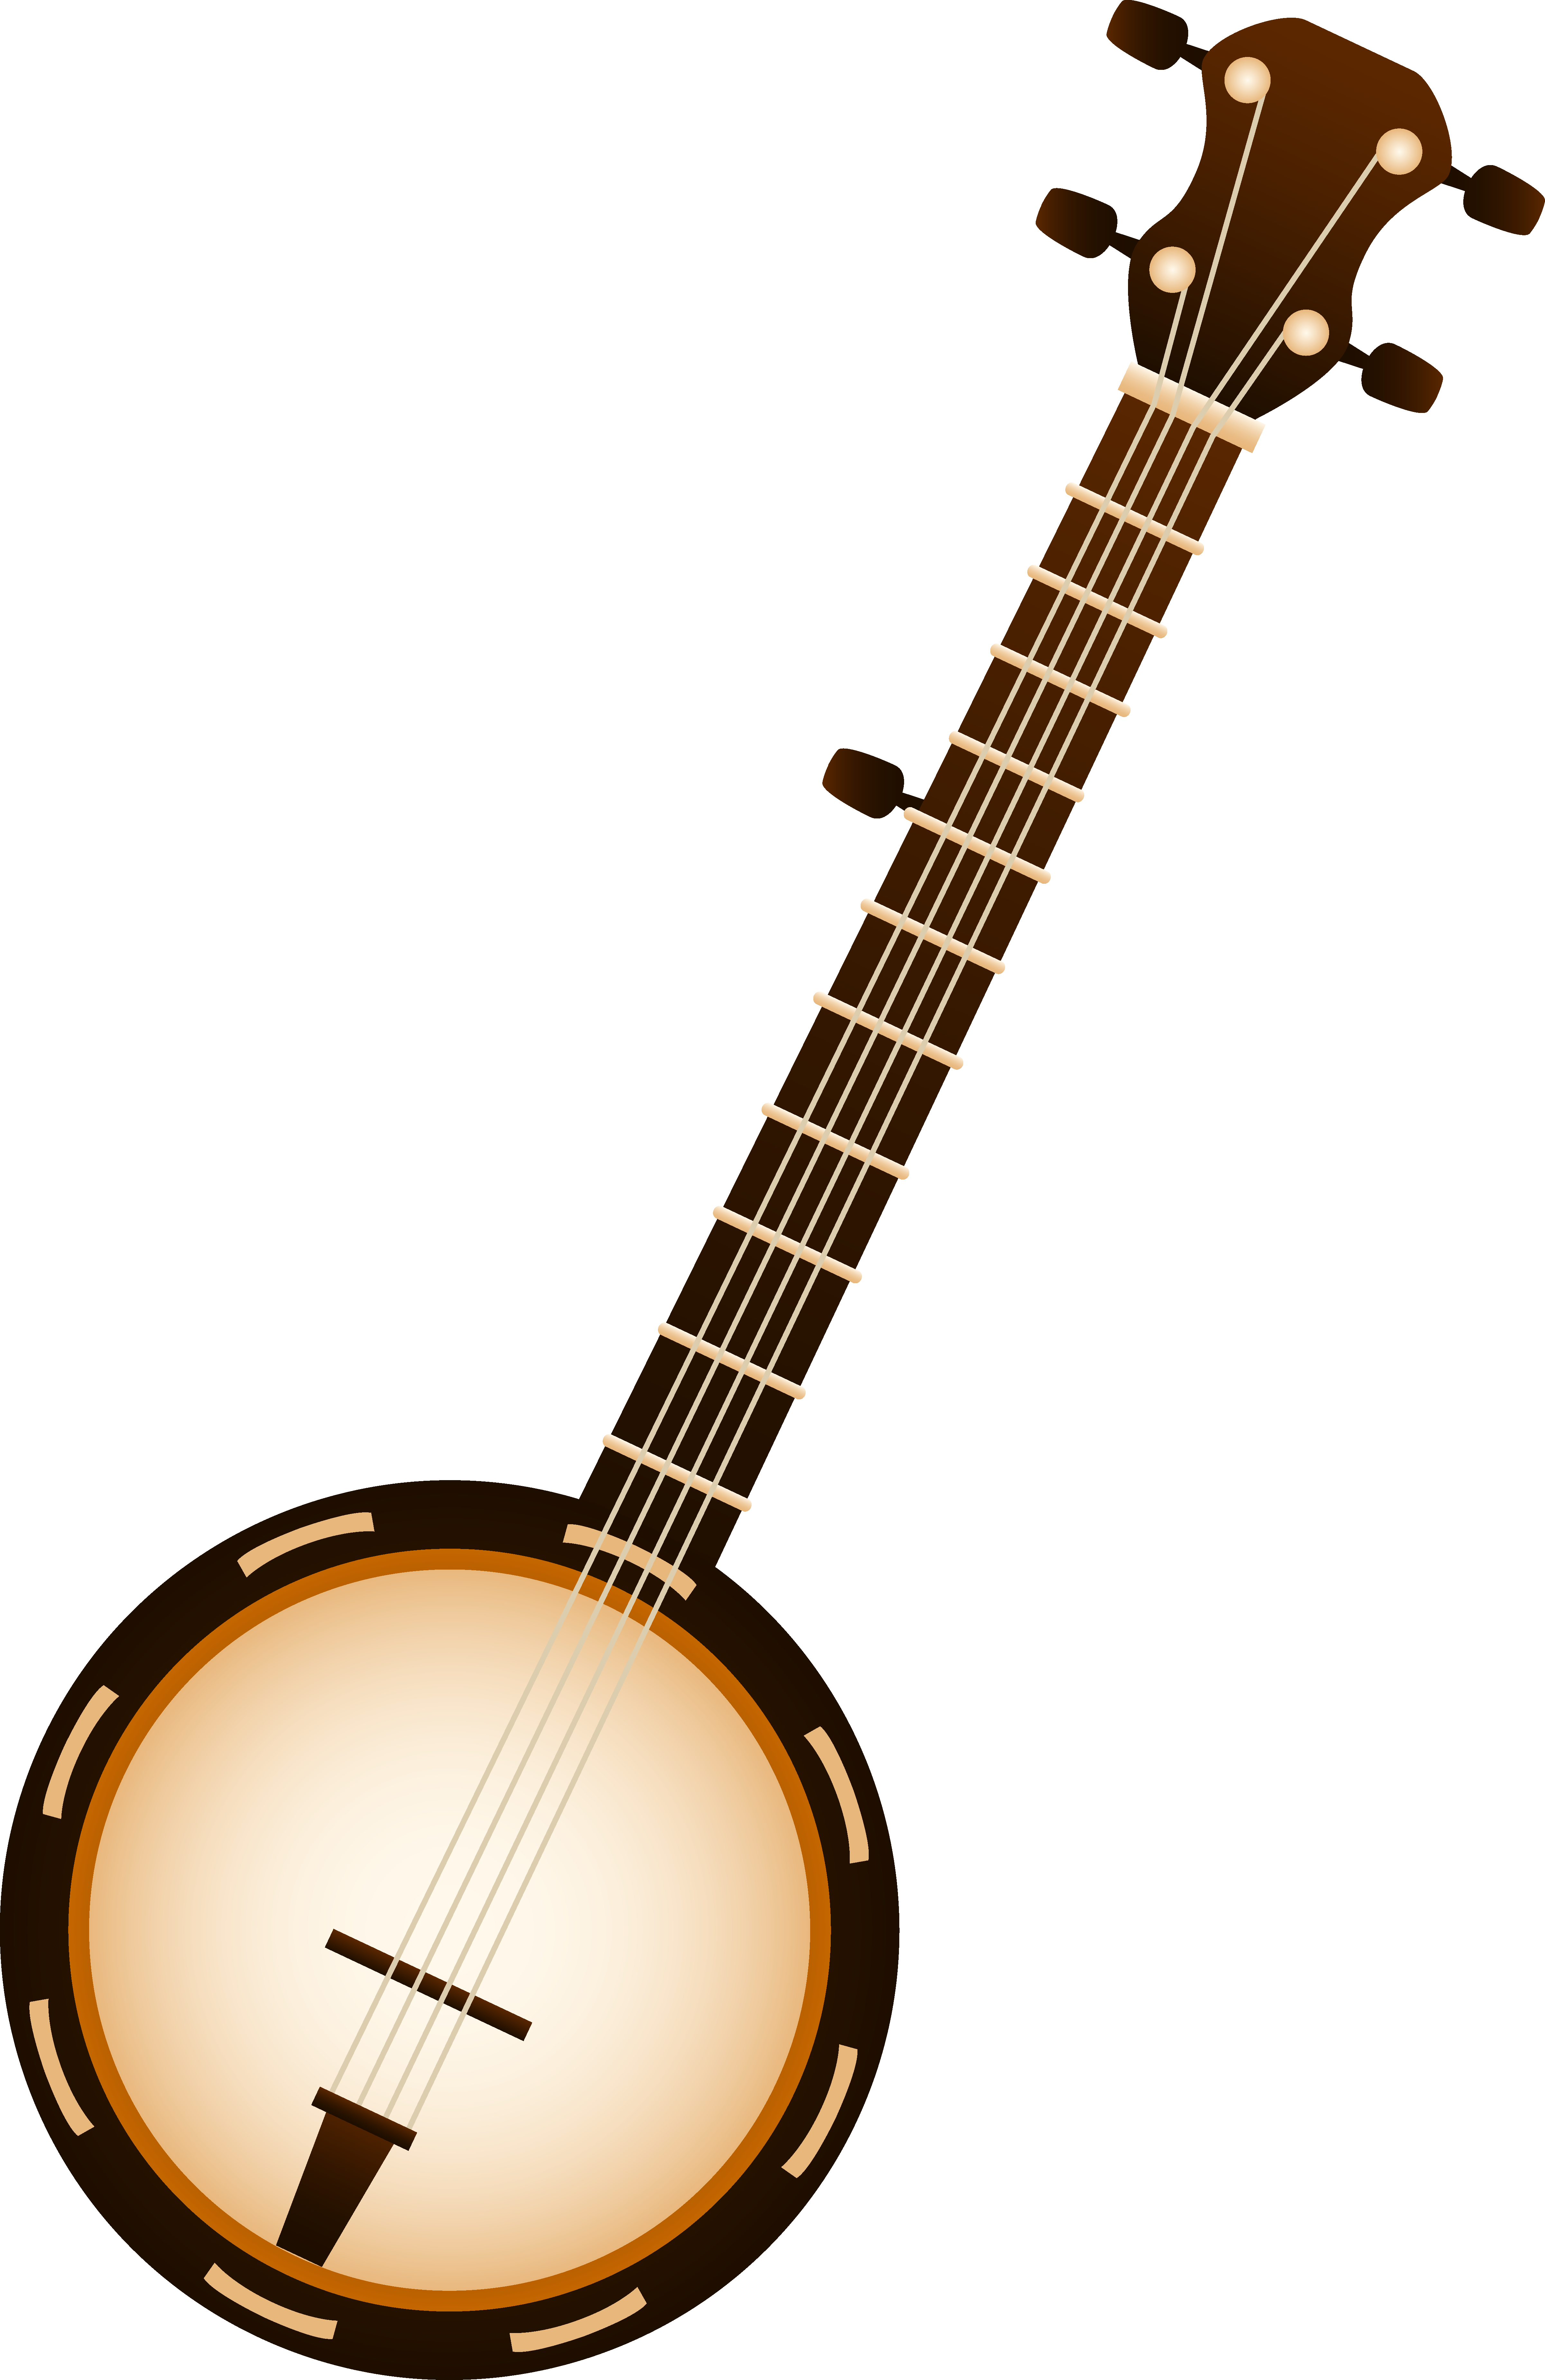 Banjo musical instrument free. Clipart rock instruments